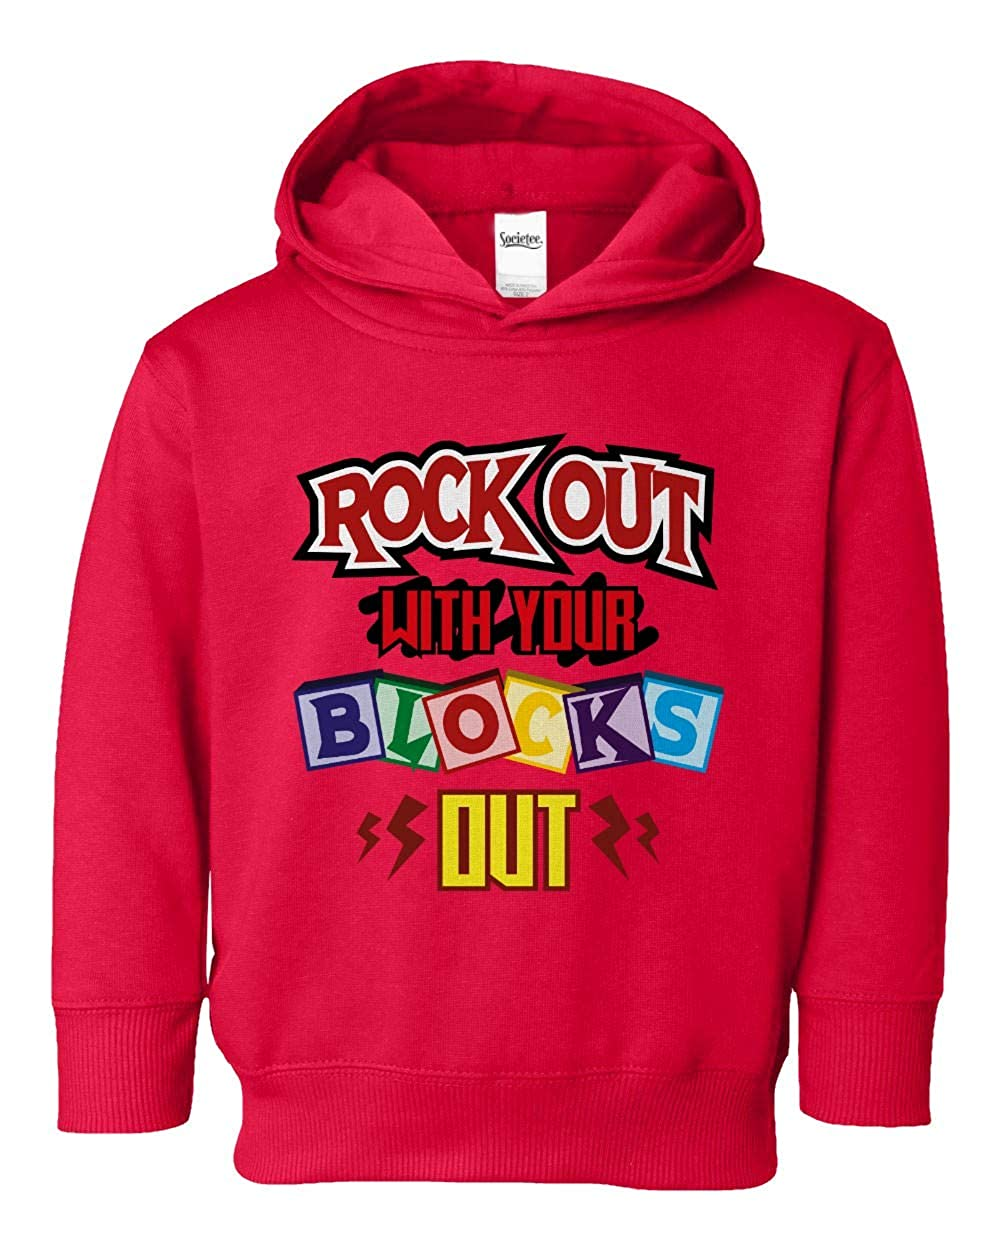 Societee Rock Out with Your Blocks Out Girls Boys Toddler Hooded Sweatshirt